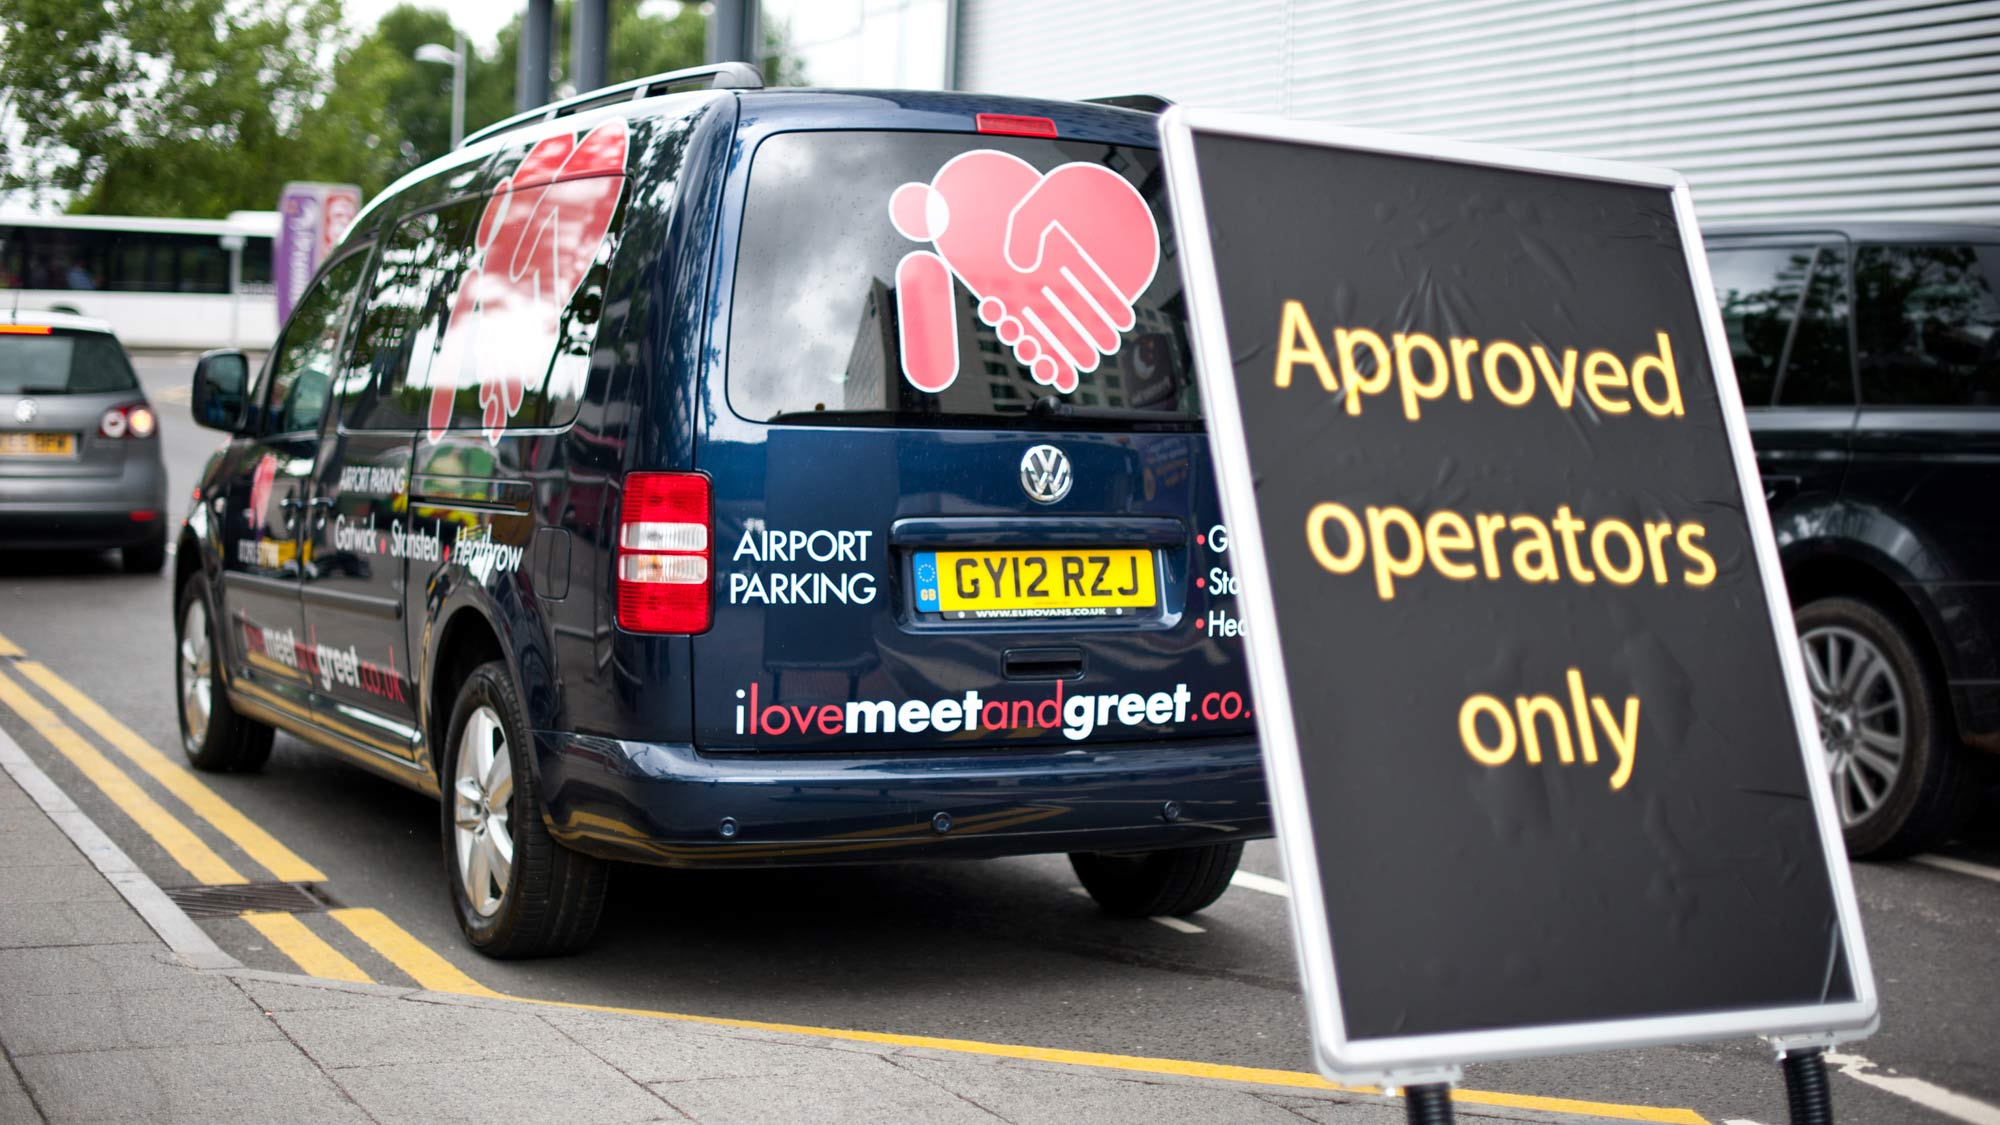 Approved operator scheme i love meet and greet on 10 july gatwick airport will be launching their approved operators scheme for airport valet parking operators and i love meet and greet parking is one kristyandbryce Image collections